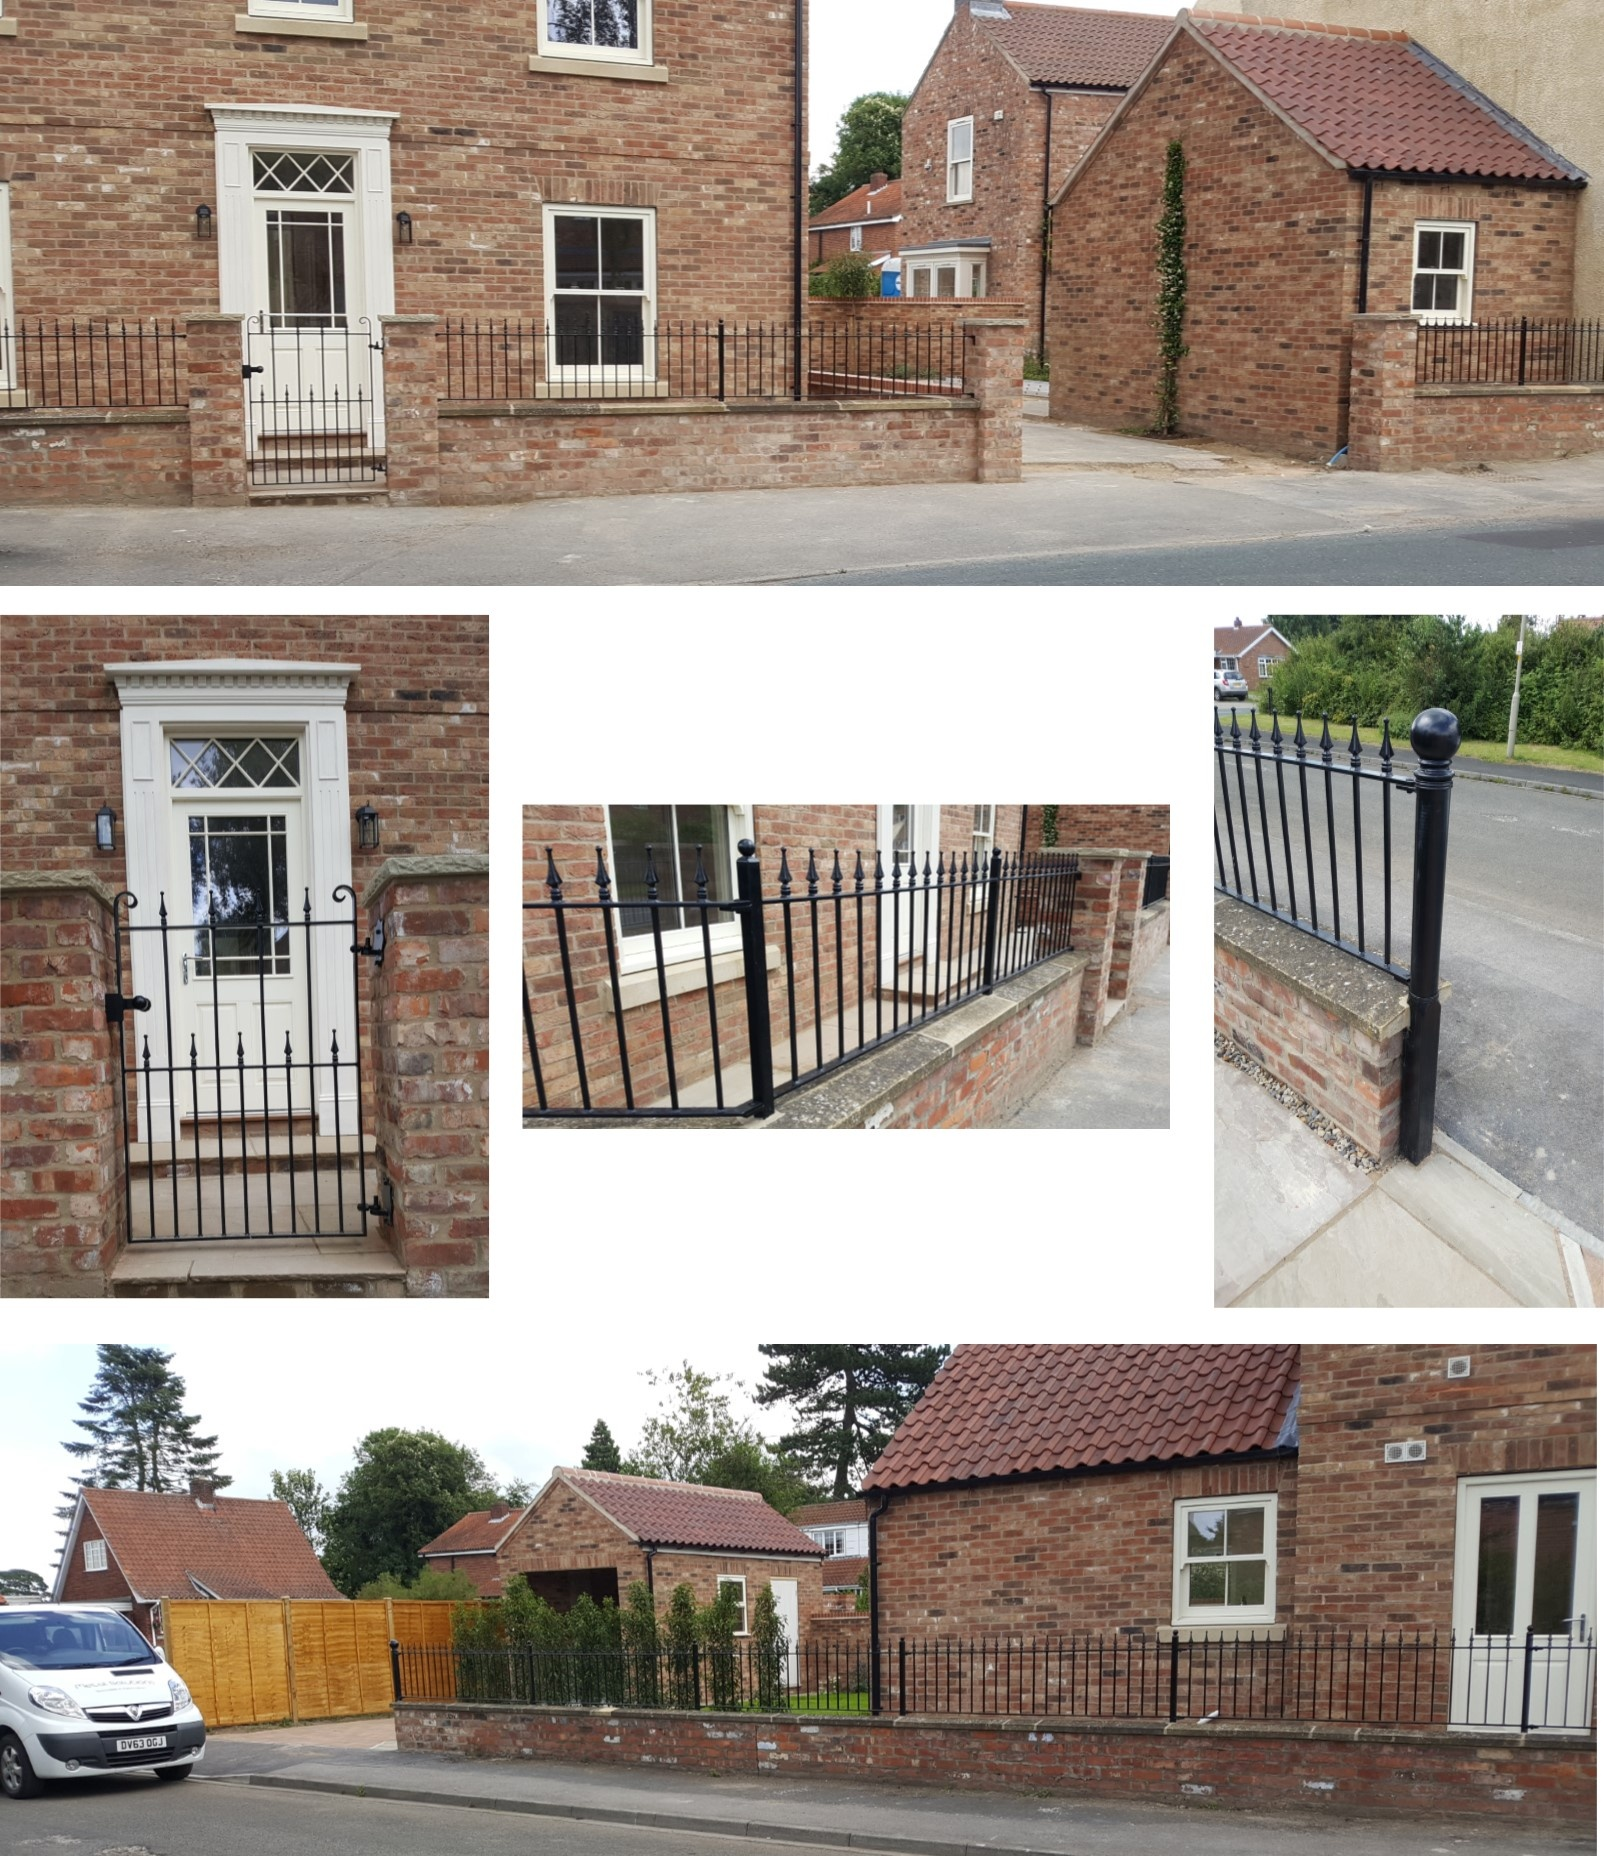 Wall railings & gate installed to new build property. Fabricated to compliment the style of the building.